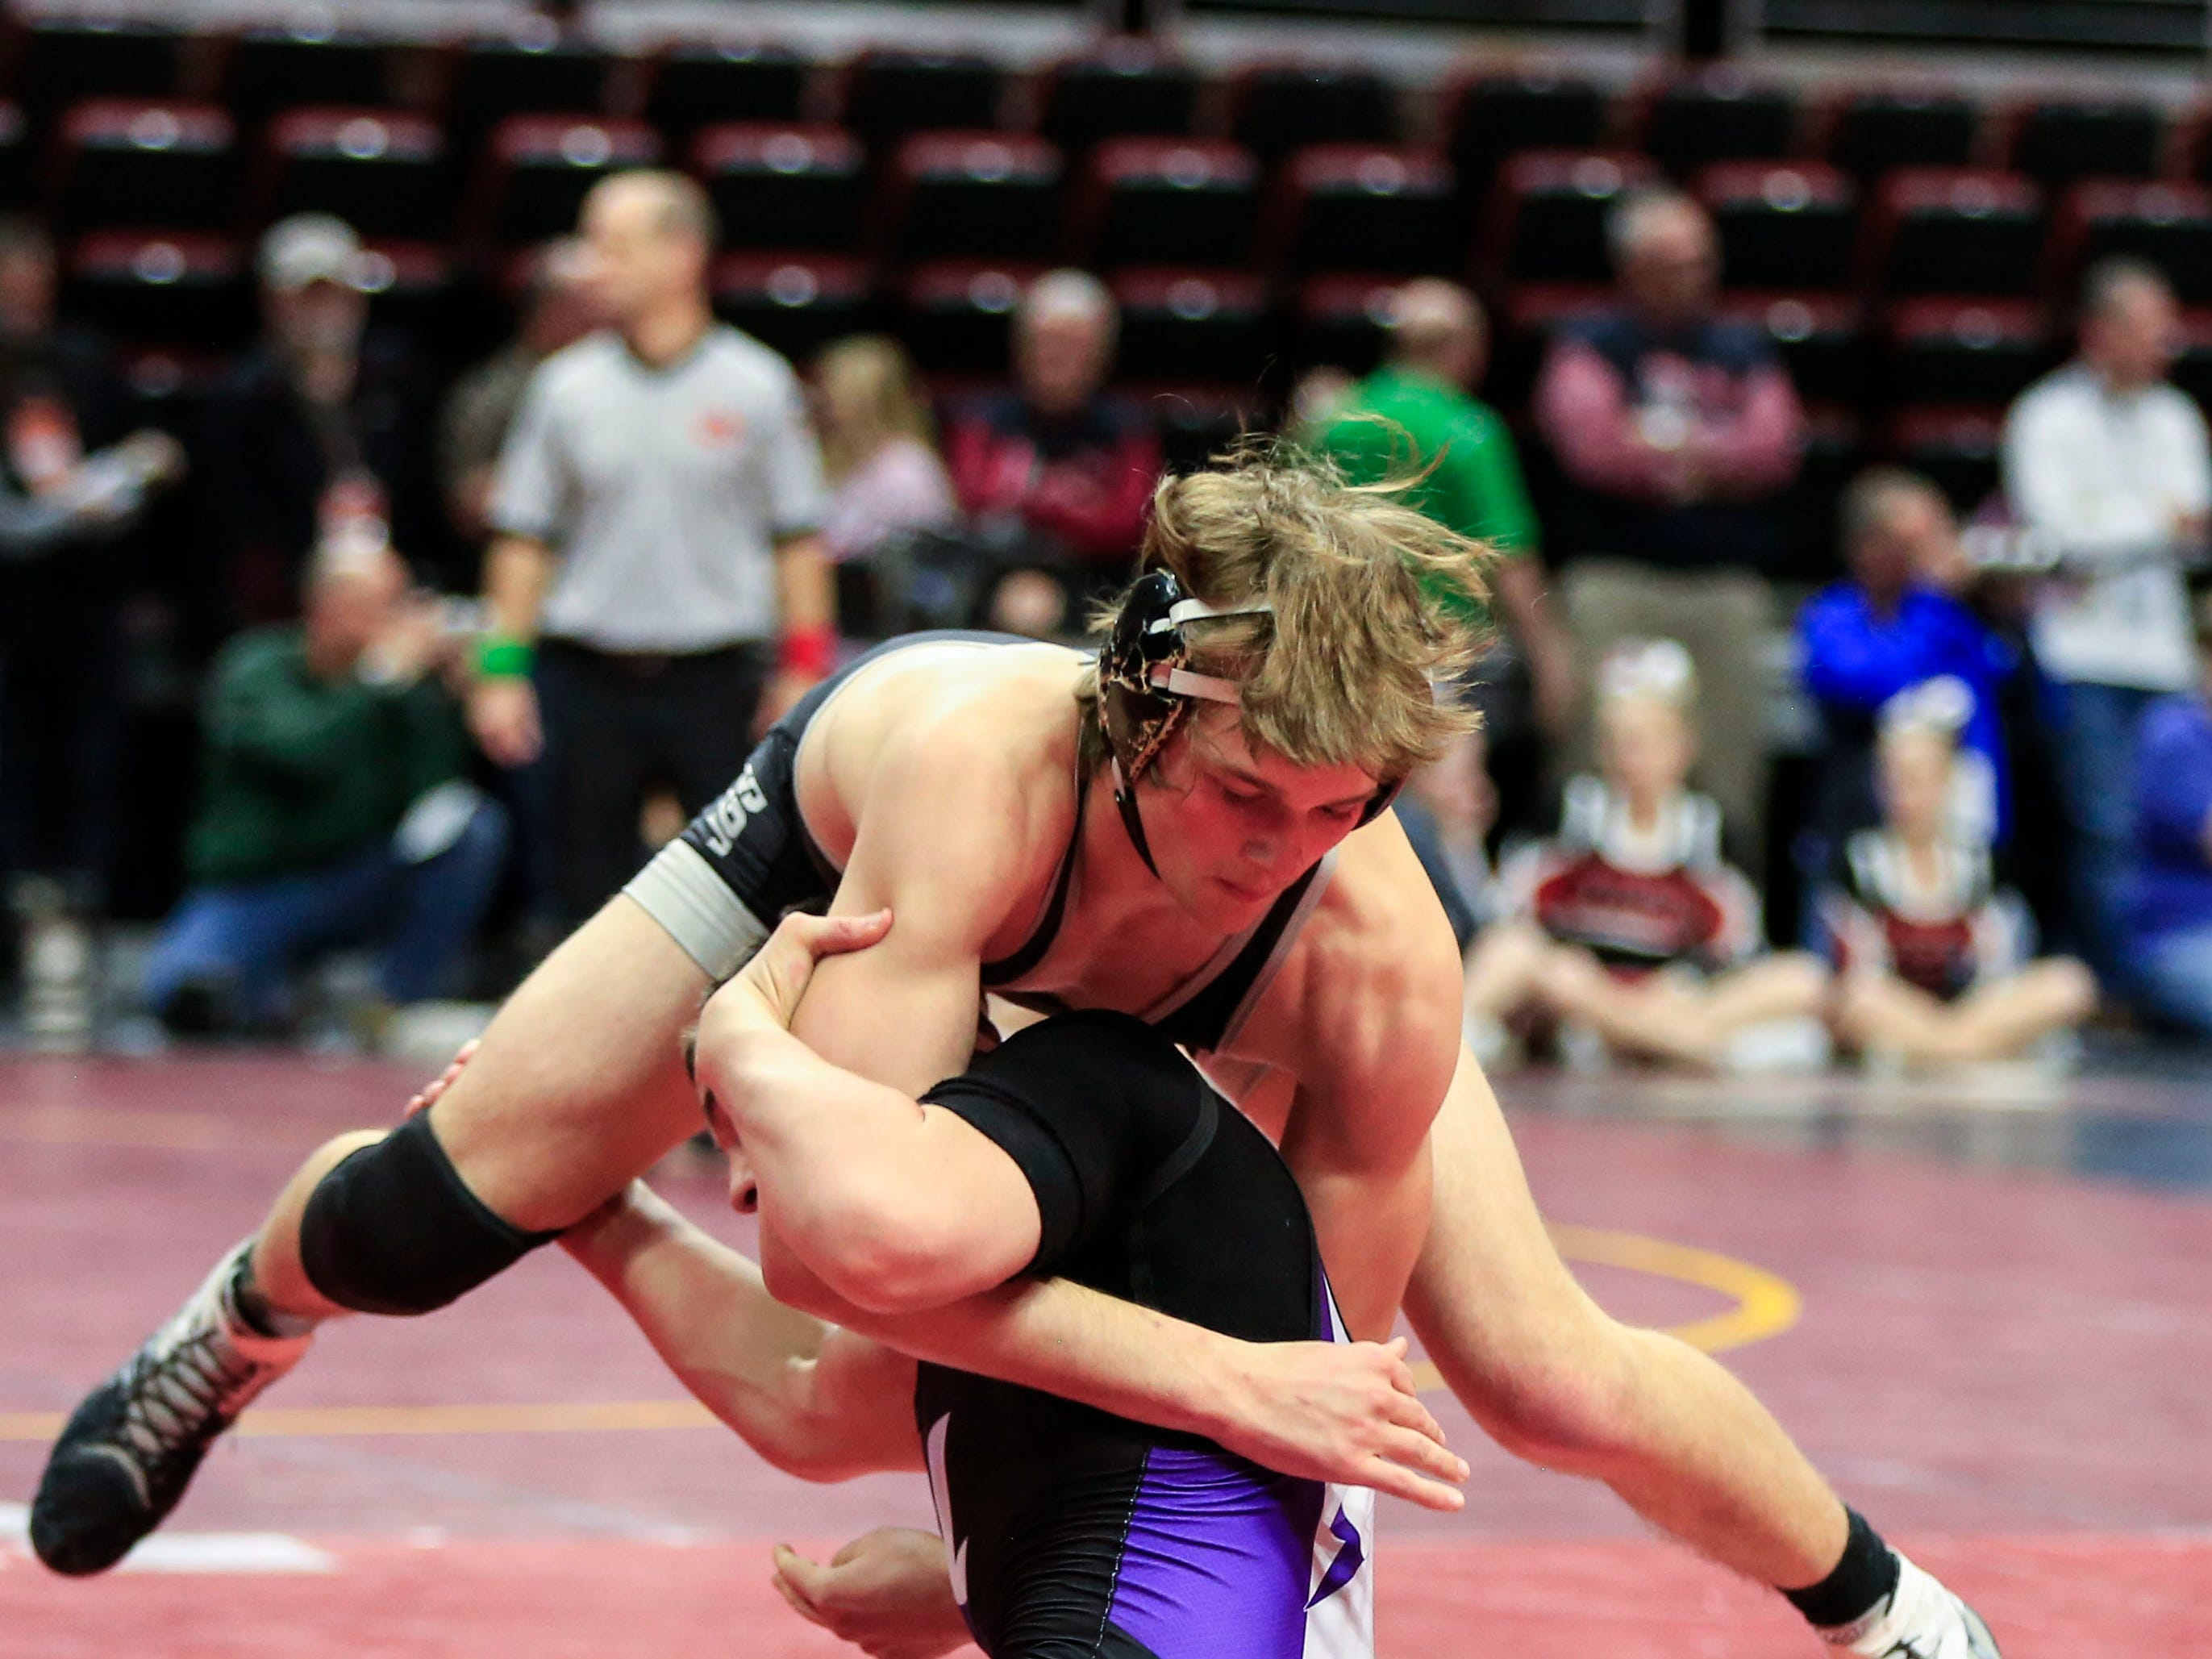 Logan Neils of Ankeny Centennial defeats Ashton Barker of Iowa City, Liberty during a 170 Lb 3A semifinal match at the state wrestling tournament Friday, Feb. 15, 2019.